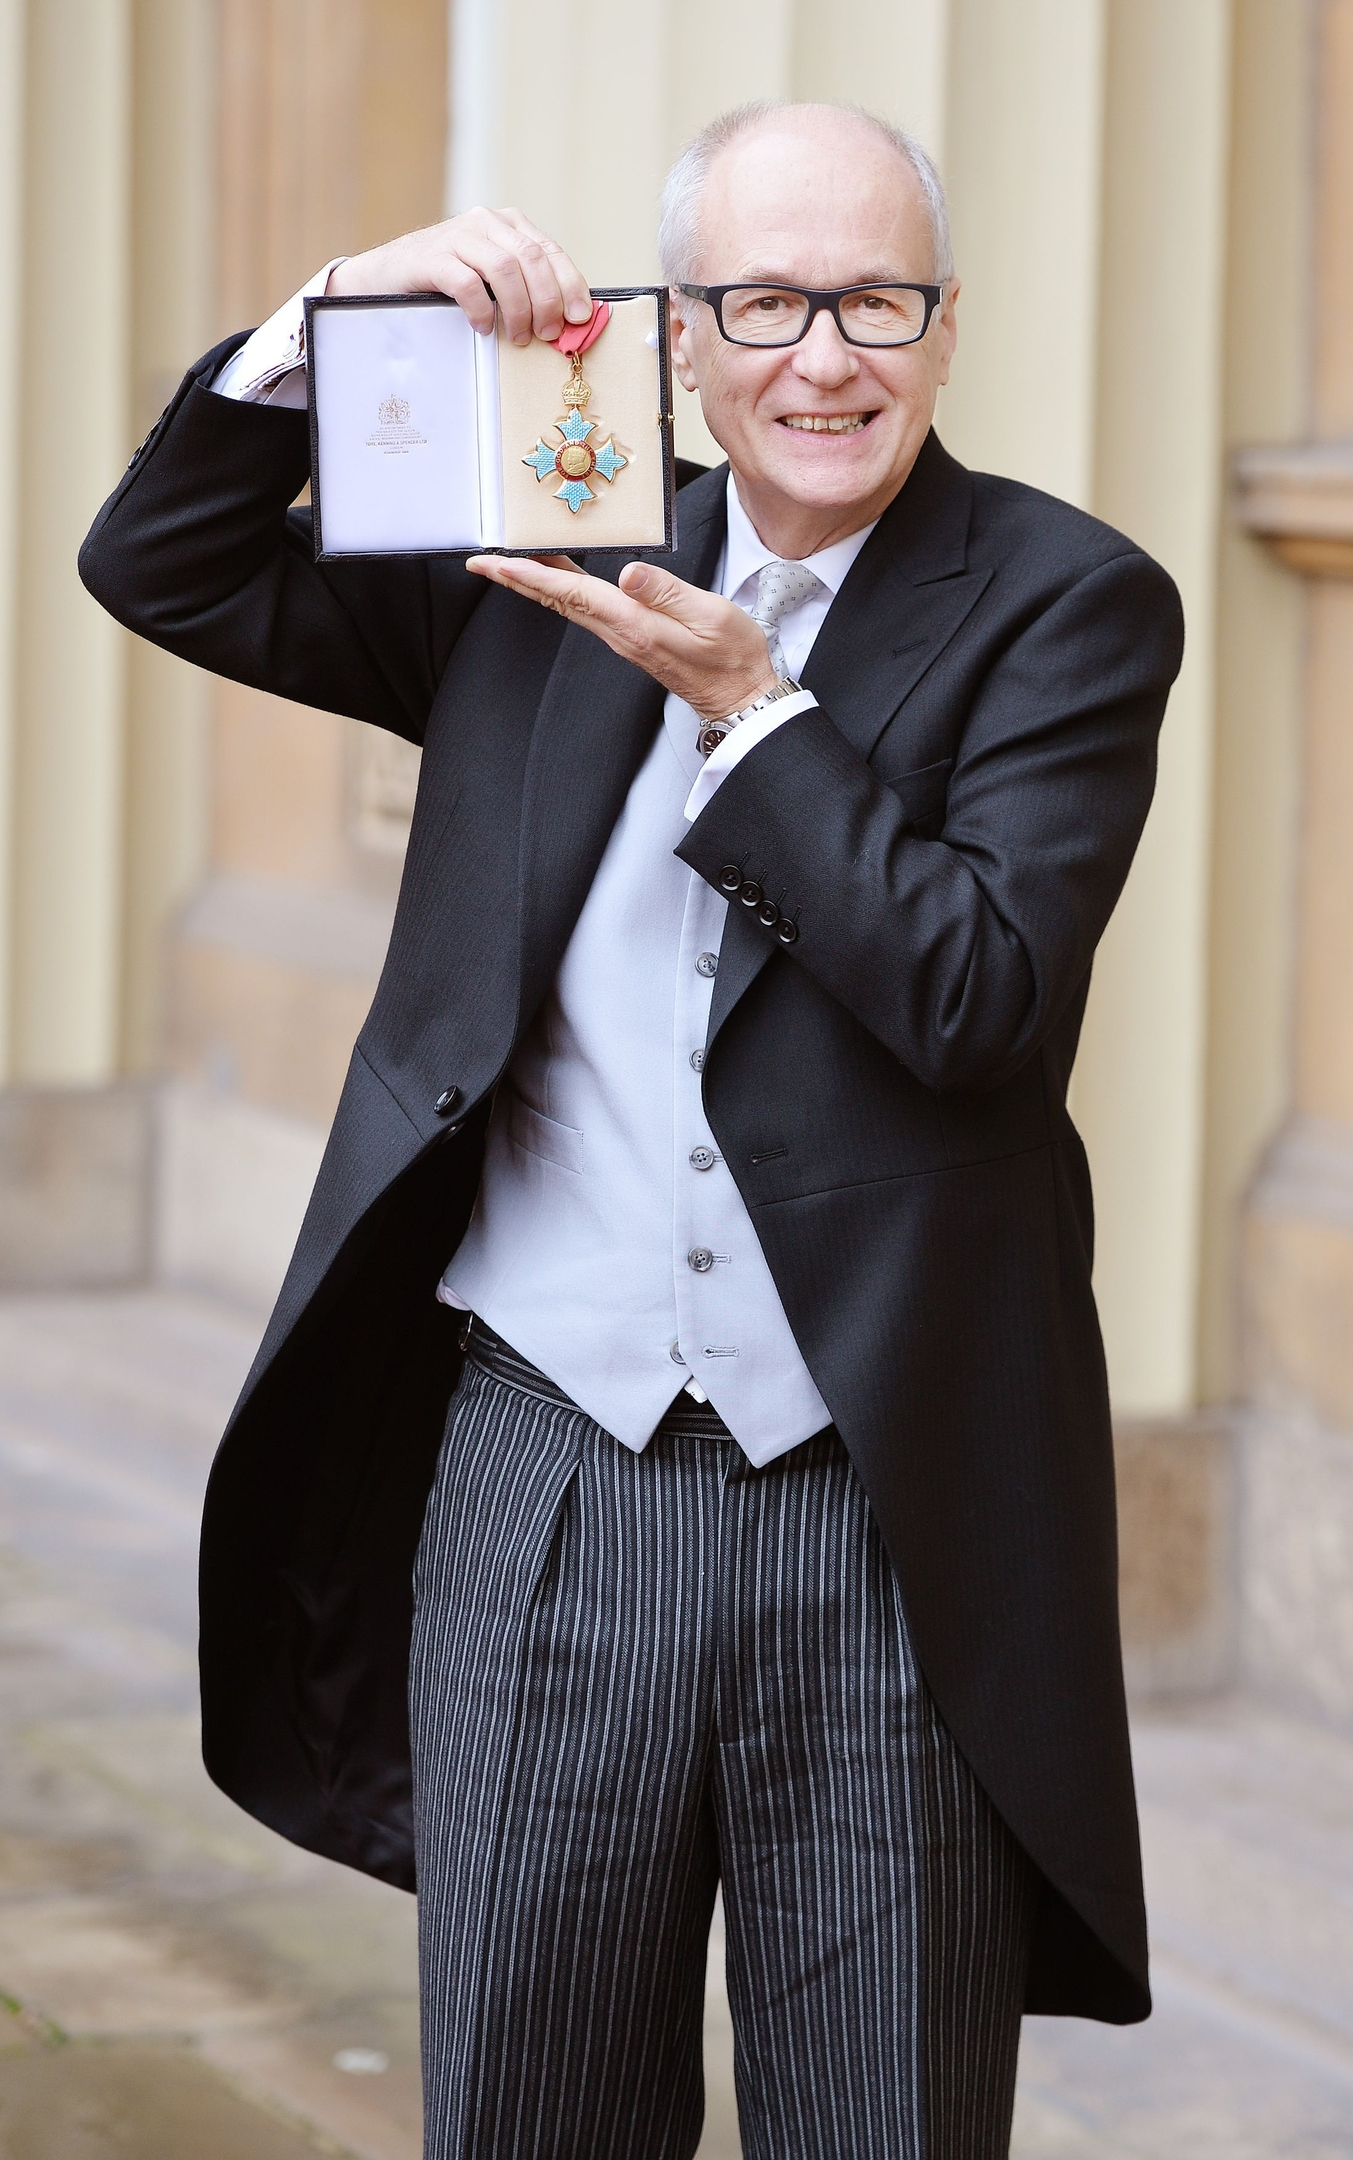 Christopher (Max) Hole with his Commander of the Order of the British Empire (CBE) medal which was presented by the Prince of Wales at the Investiture ceremony in Buckingham Palace, London.